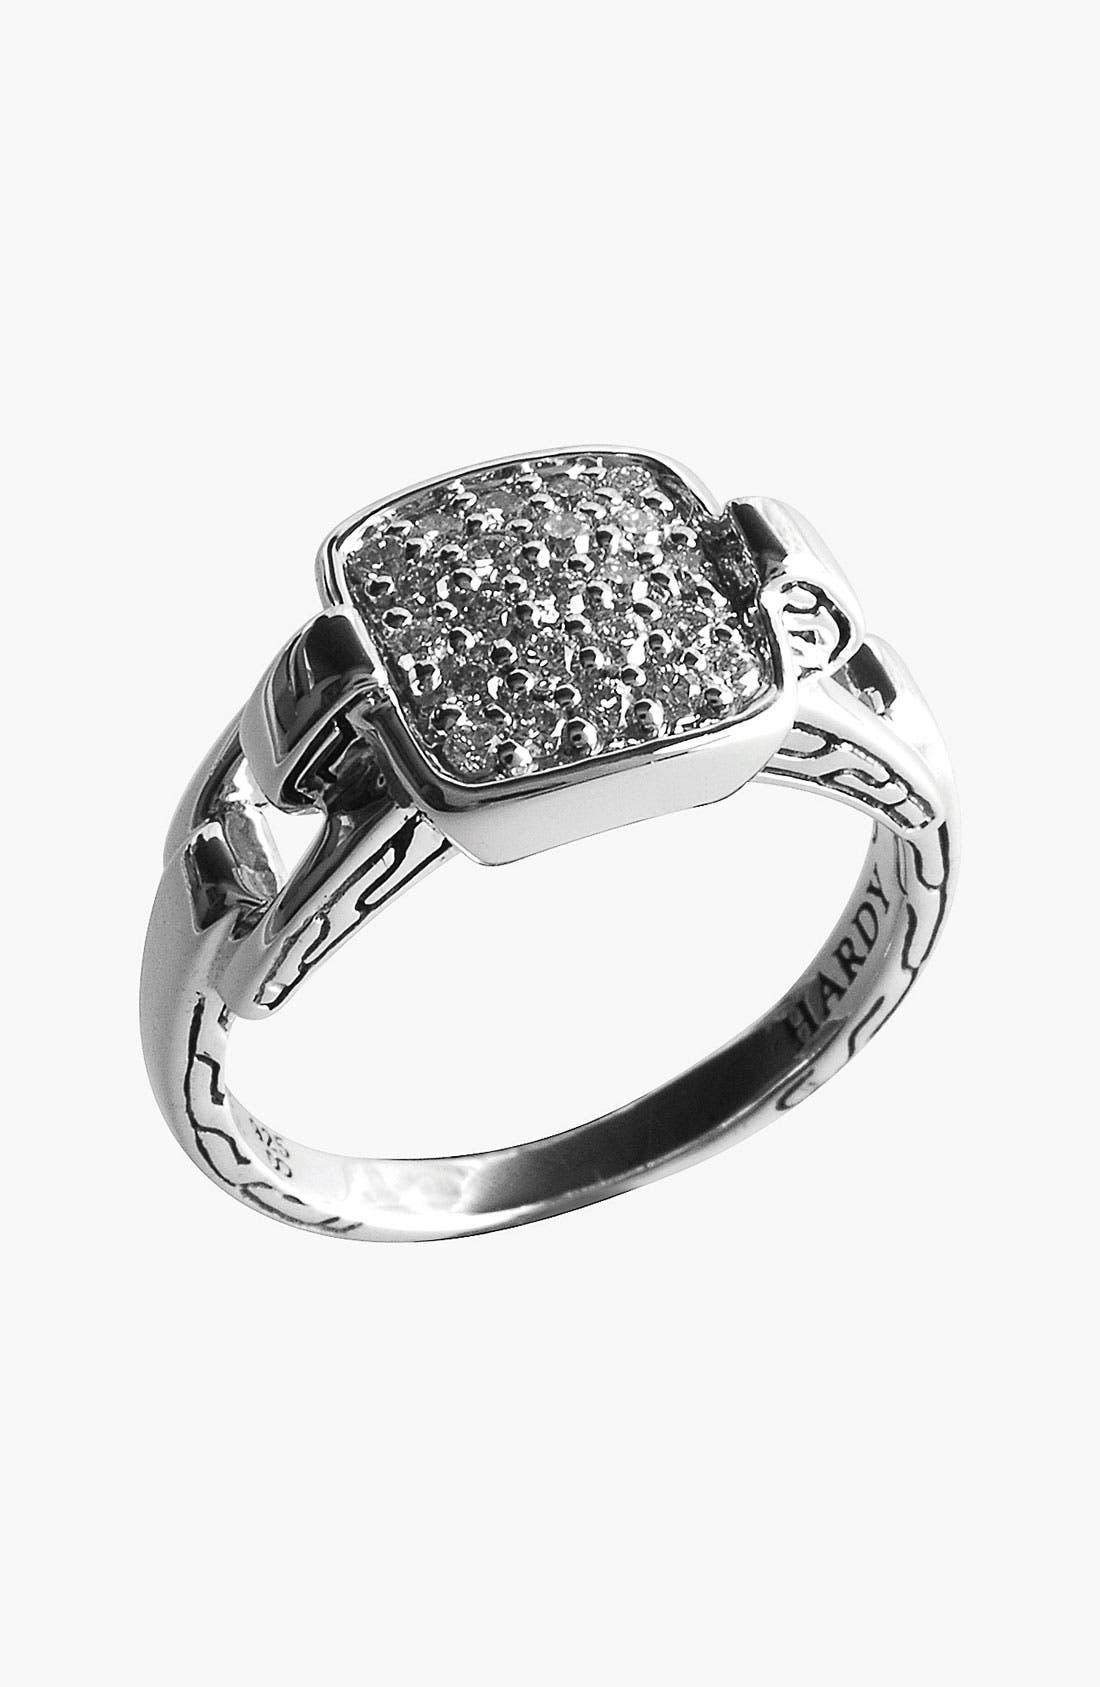 Alternate Image 1 Selected - John Hardy 'Classic Chain' Rectangular Diamond Ring